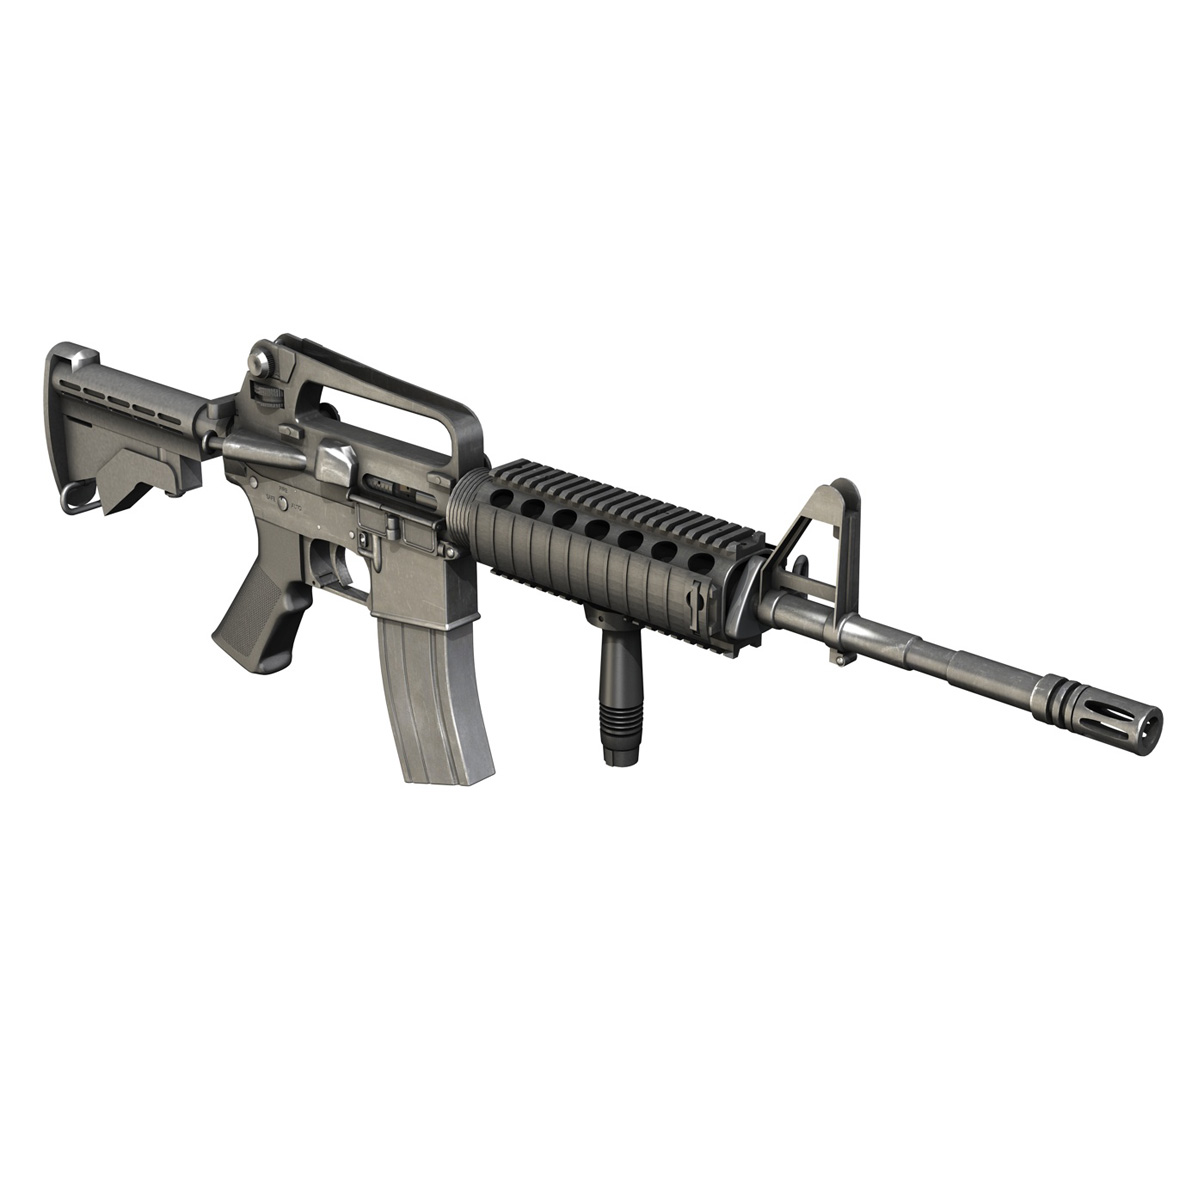 Colt M4A1 Carbine RIS Assault Rifle 3D Model